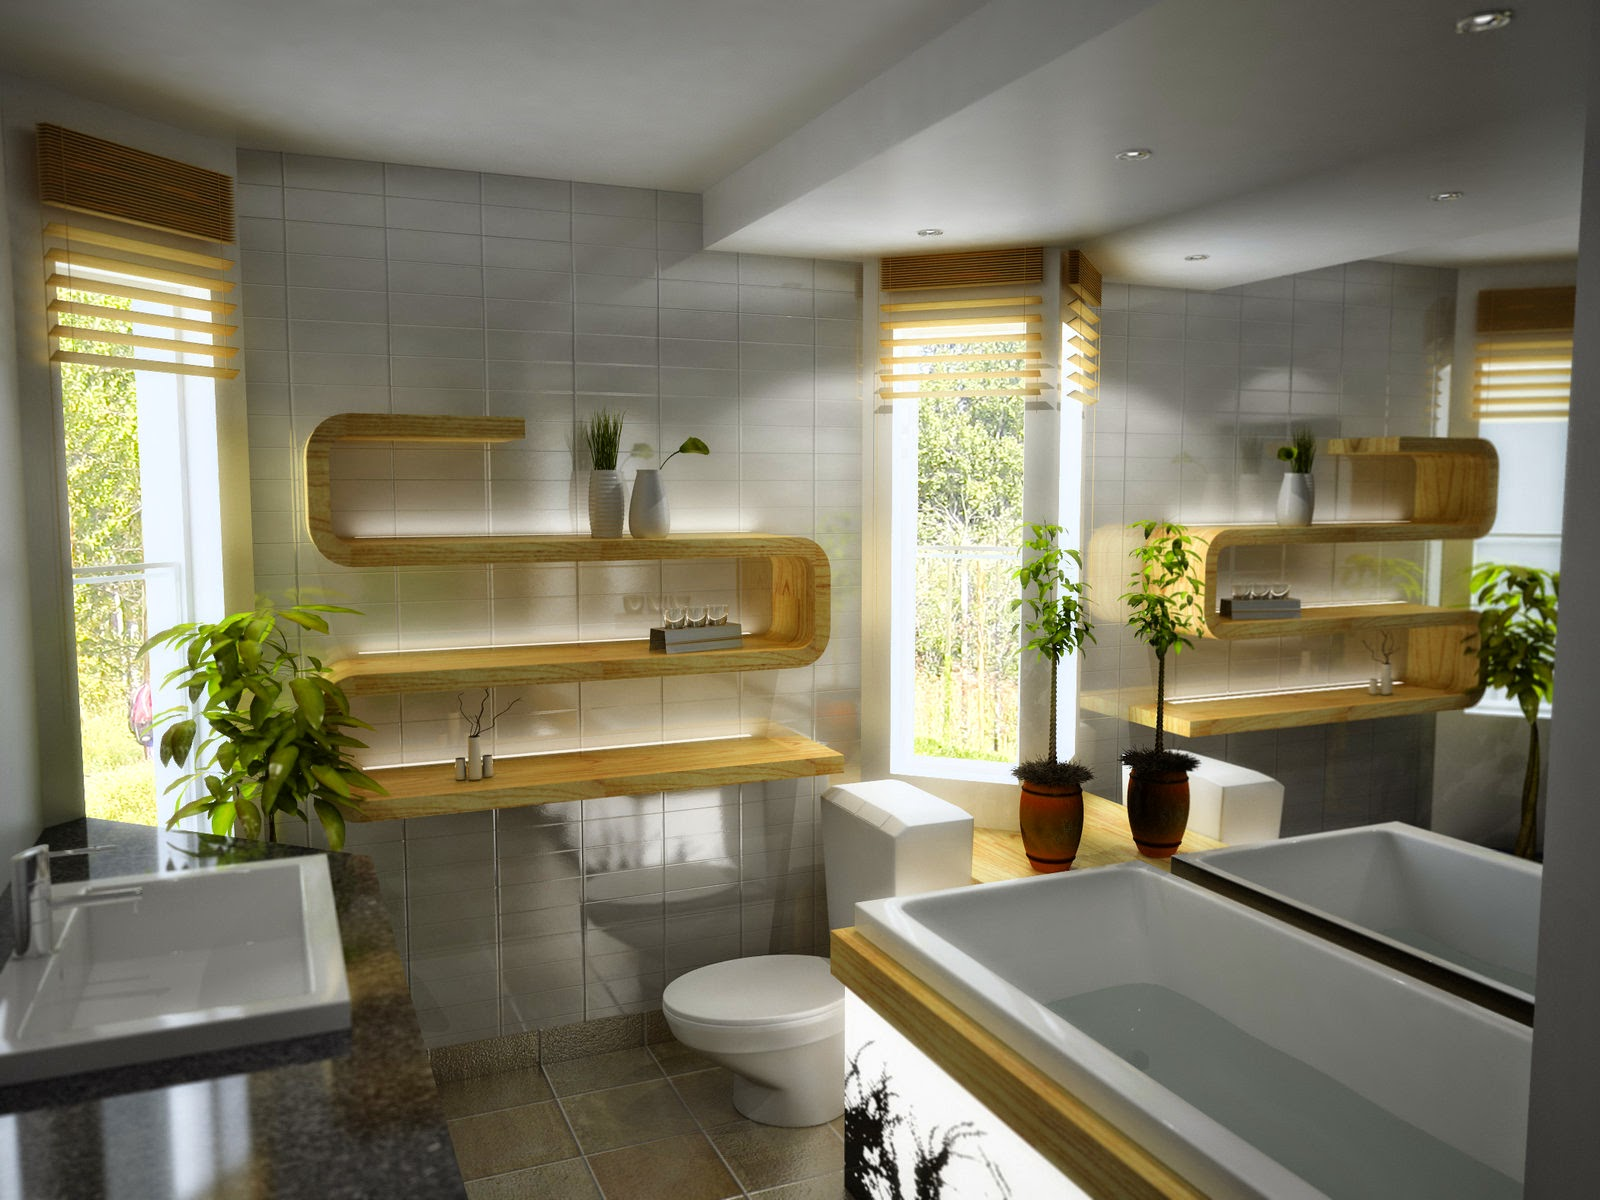 Bathroom Design Ideas For Interior Important Points Picture 03